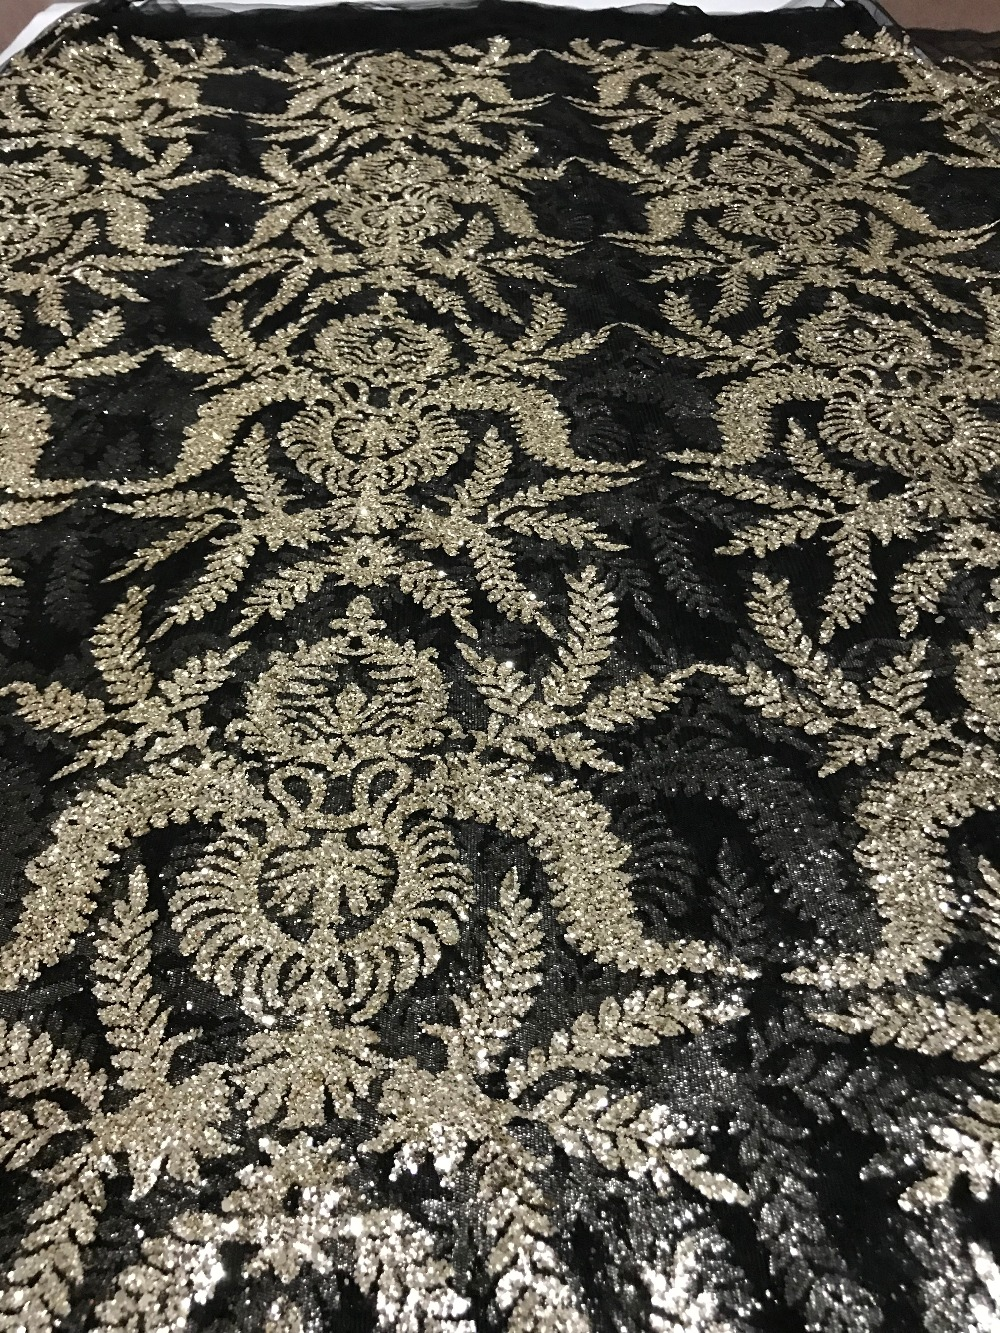 5yards glued print glitter tulle mesh fabric David 61204 unqiue for evening dress party wedding